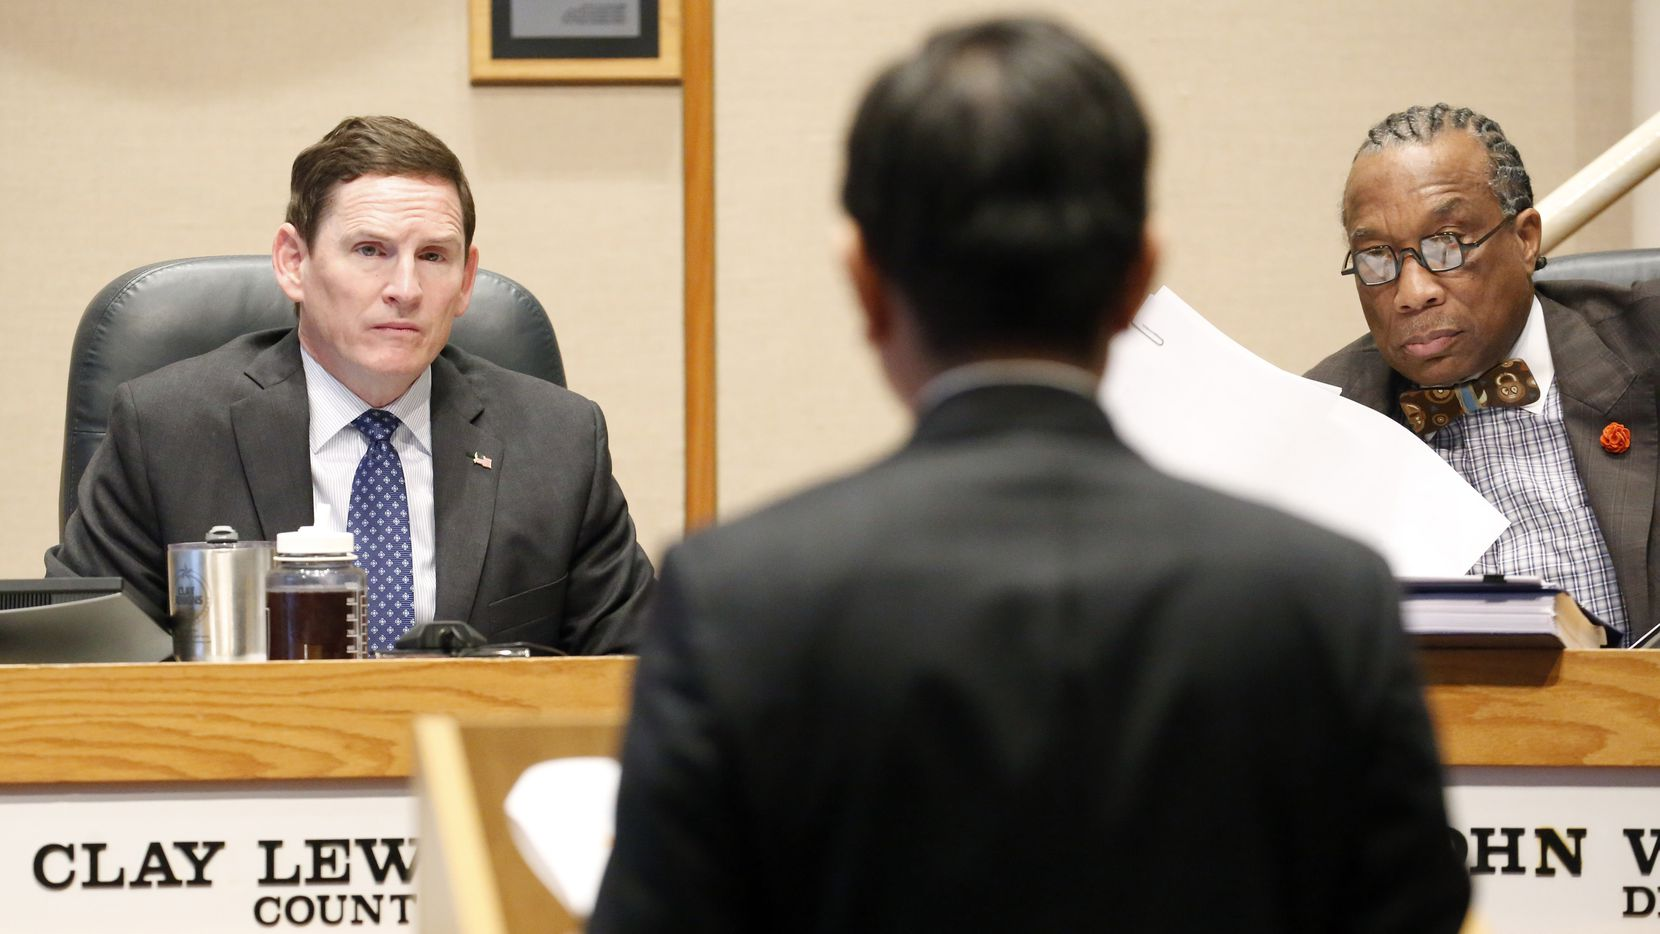 Dallas County Judge Clay Jenkins (left) and Commissioner John Wiley Price (right) listen to Dallas County Health Department director Dr. Philip Huang presents information about the coronavirus at the Dallas County Commissioner Court in Dallas, Tuesday, February 4, 2020.